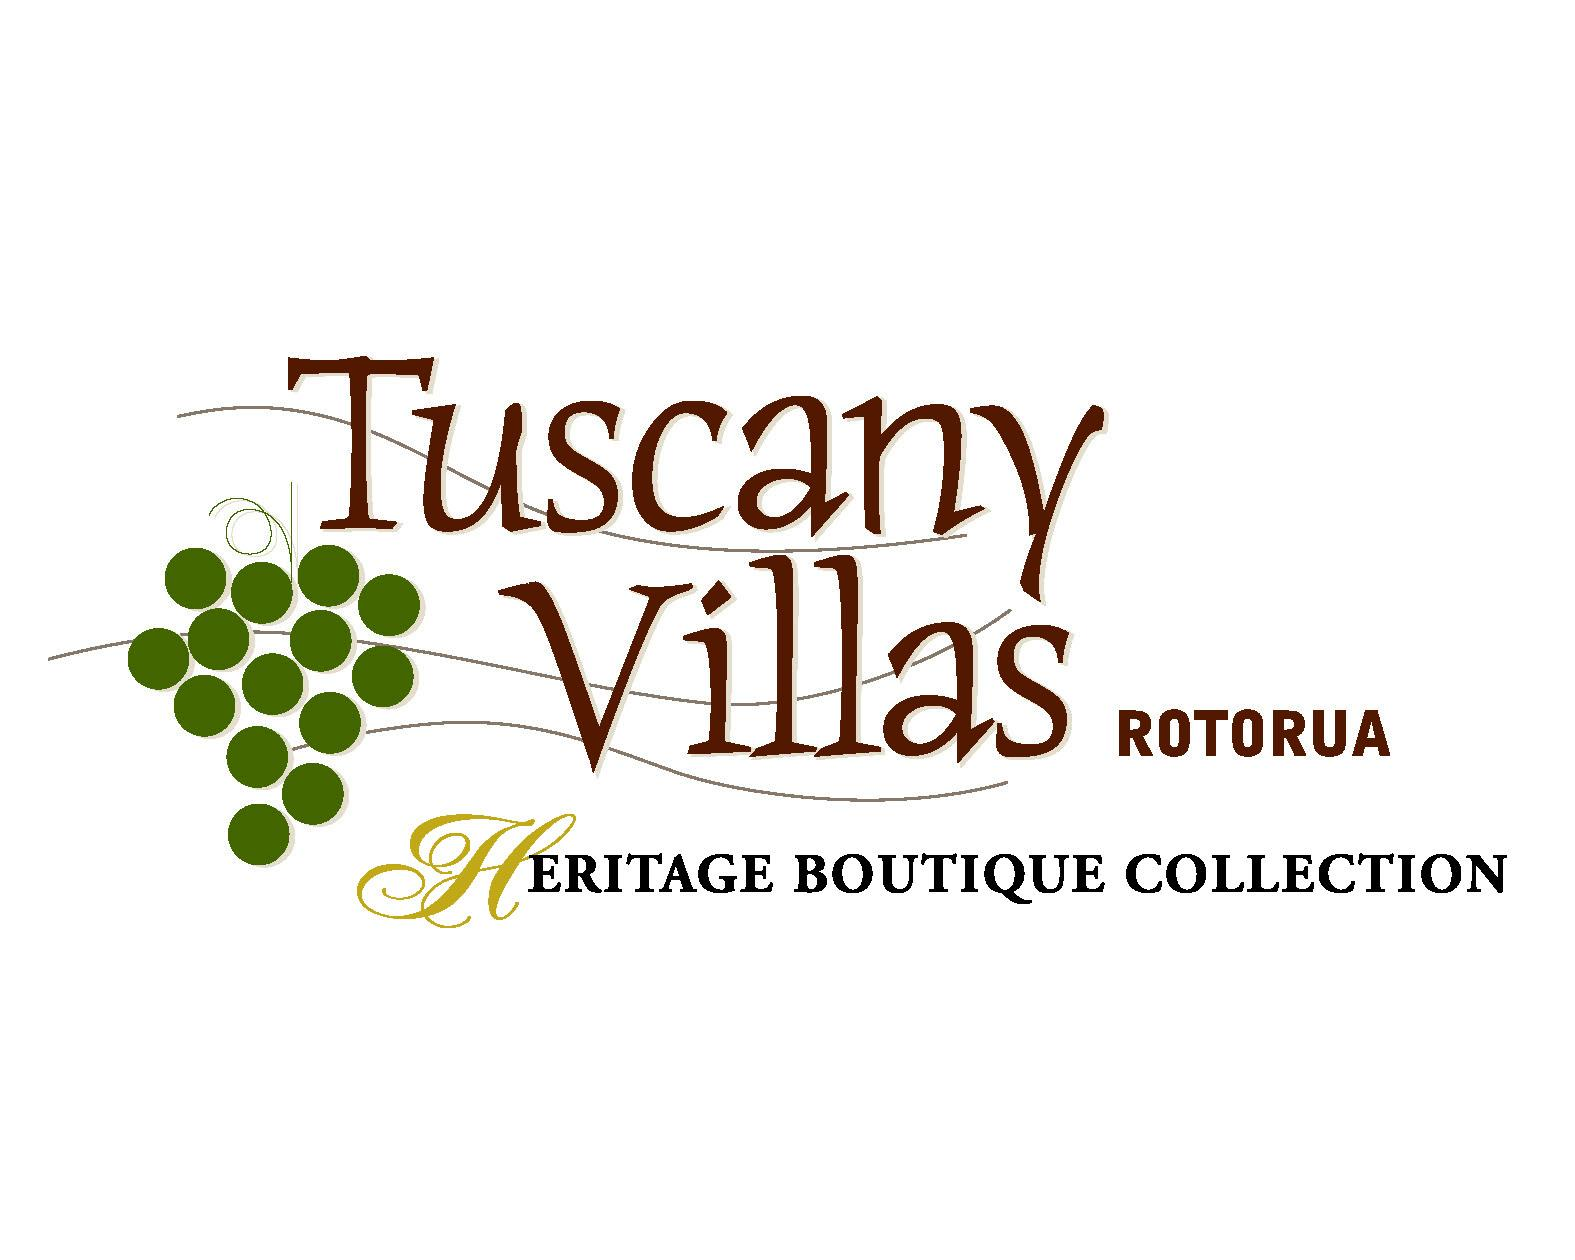 Tuscany Villas Rotorua - Heritage Collection